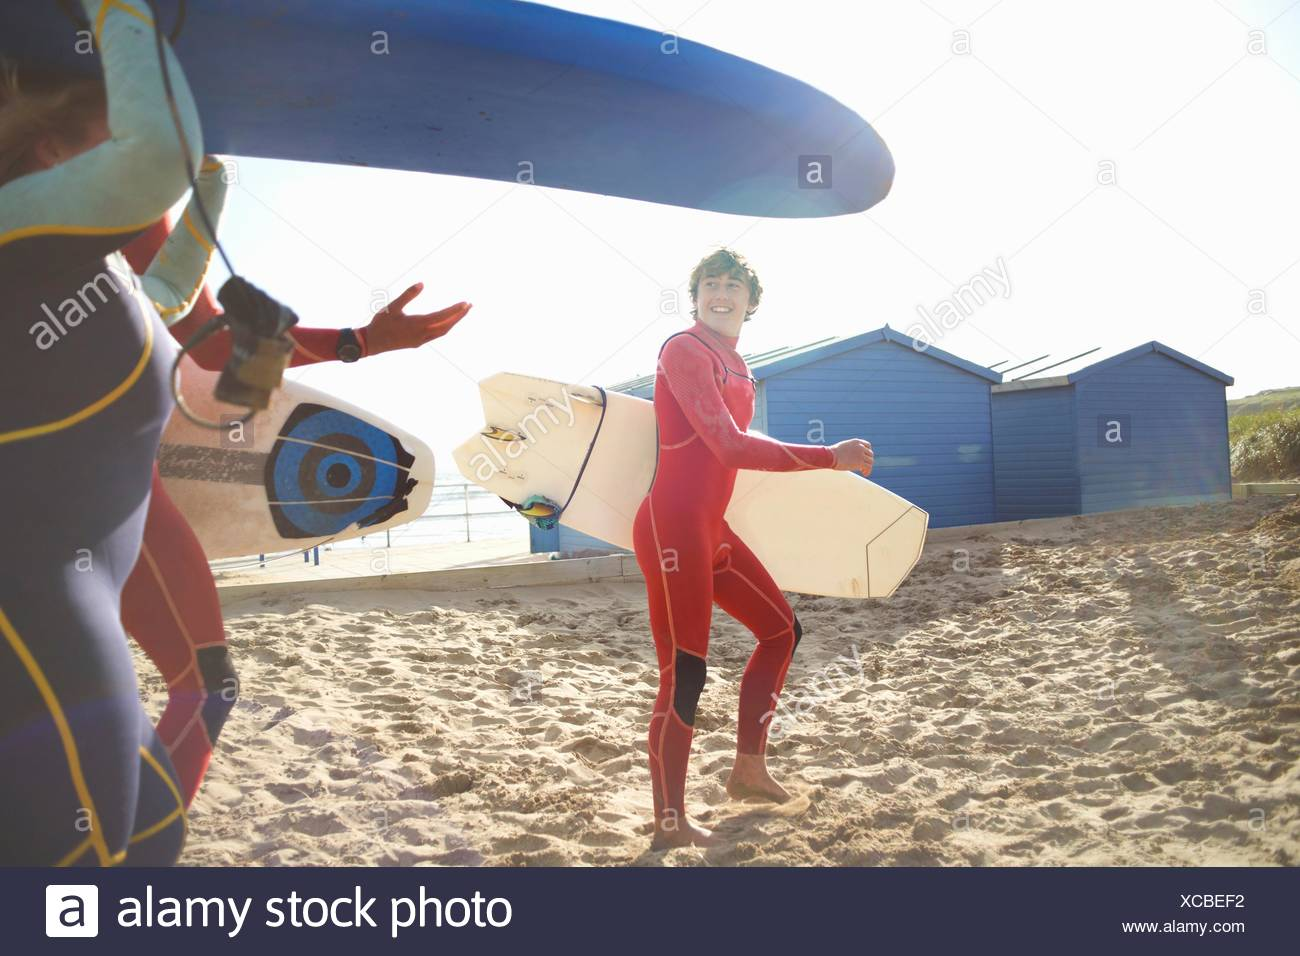 Group of surfers on beach, carrying surfboards - Stock Image